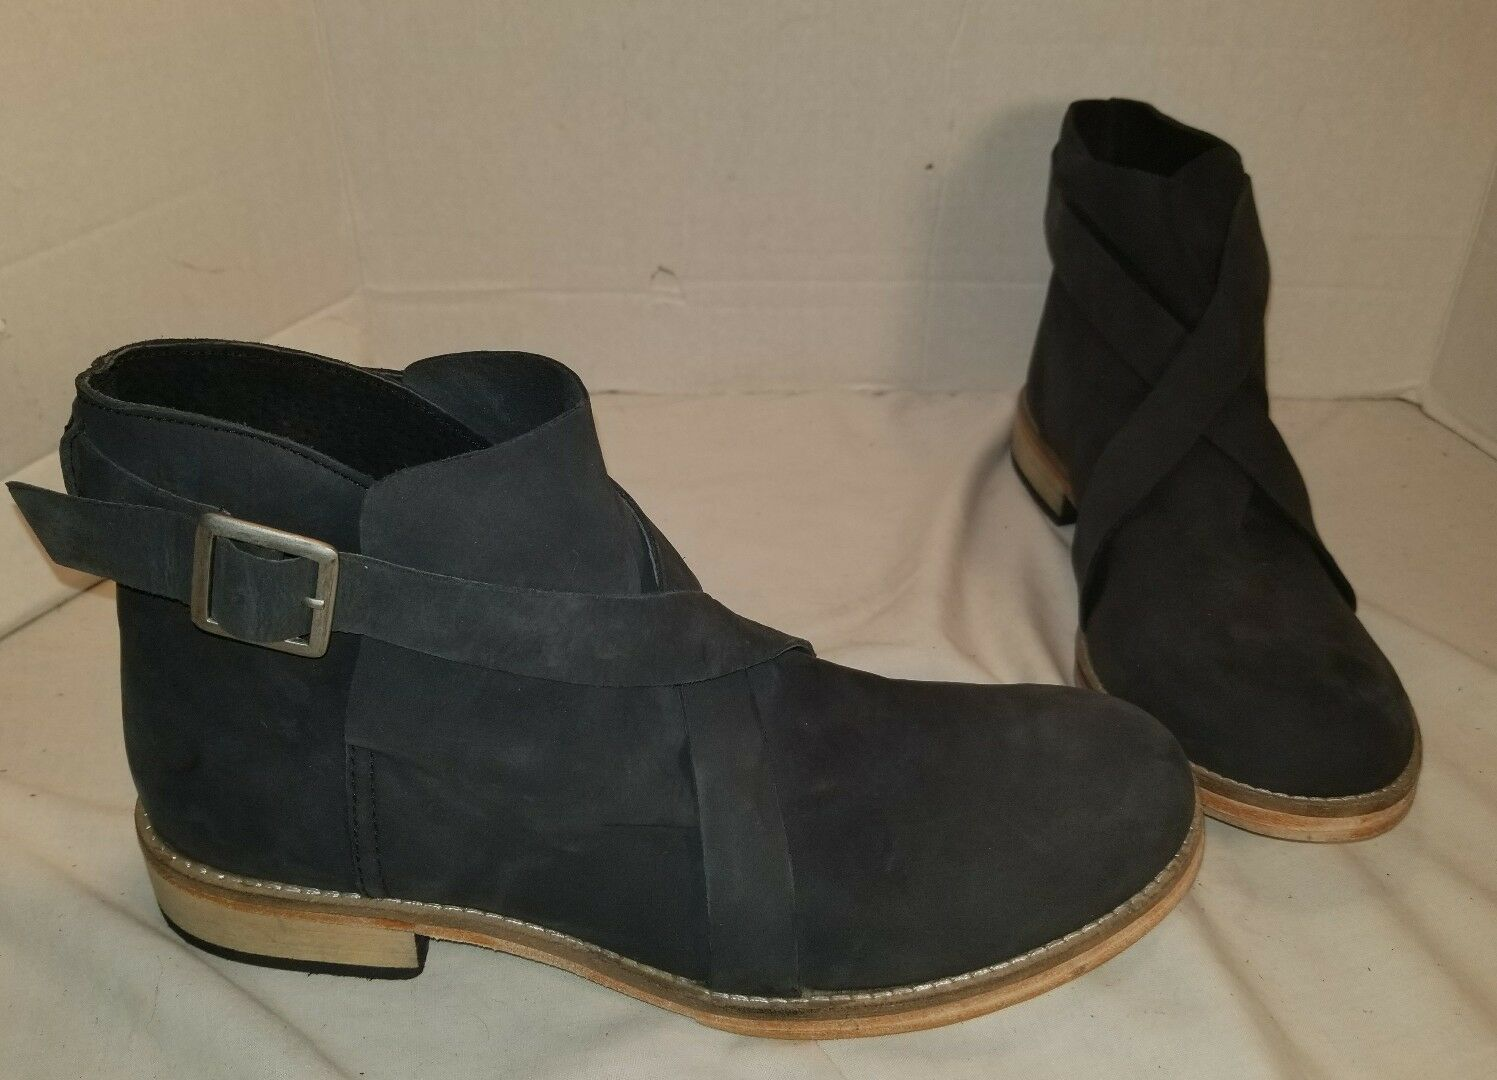 ANTHROPOLOGIE FREE PEOPLE LAS PALMAS BLACK LEATHER ANKLE BOOTS US 10